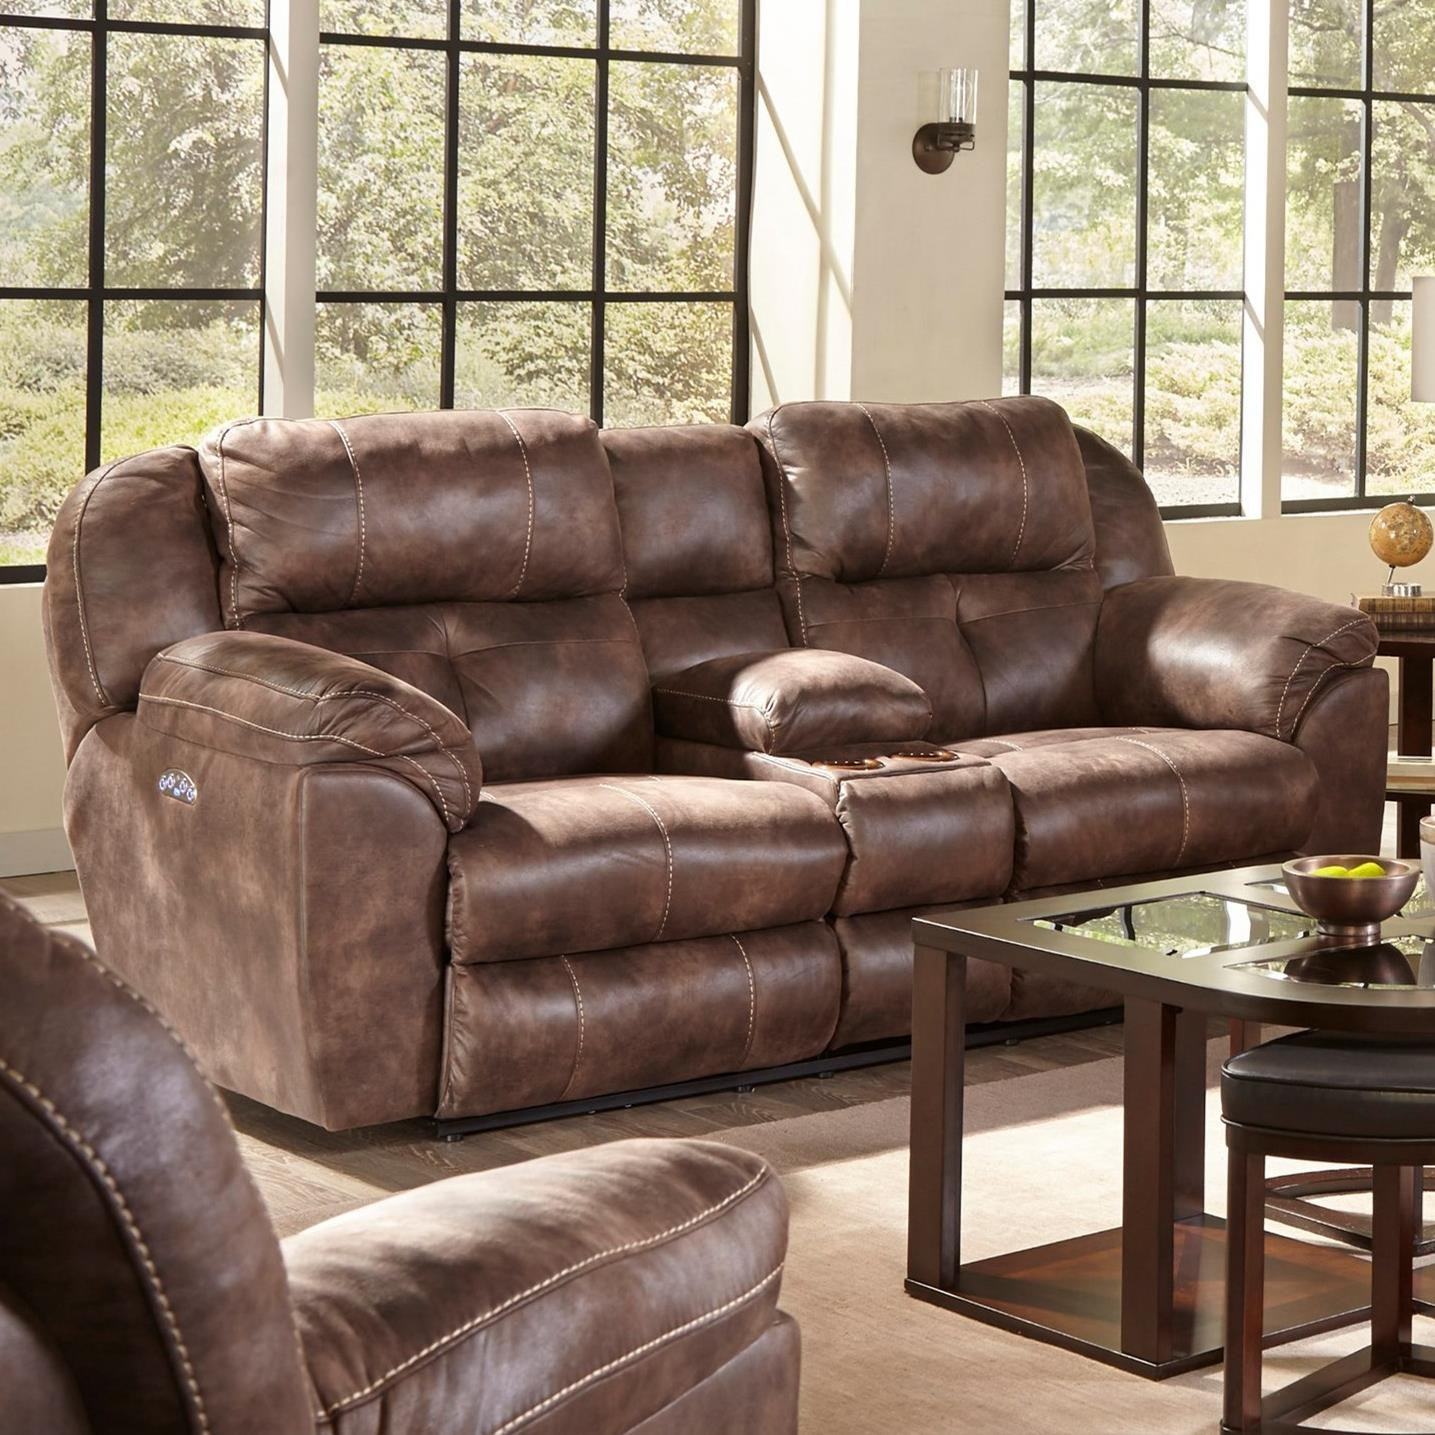 Catnapper Ferrington Pwr Headrest Lay-Flat Reclining Console Sofa - Item Number: 61899-1300-89